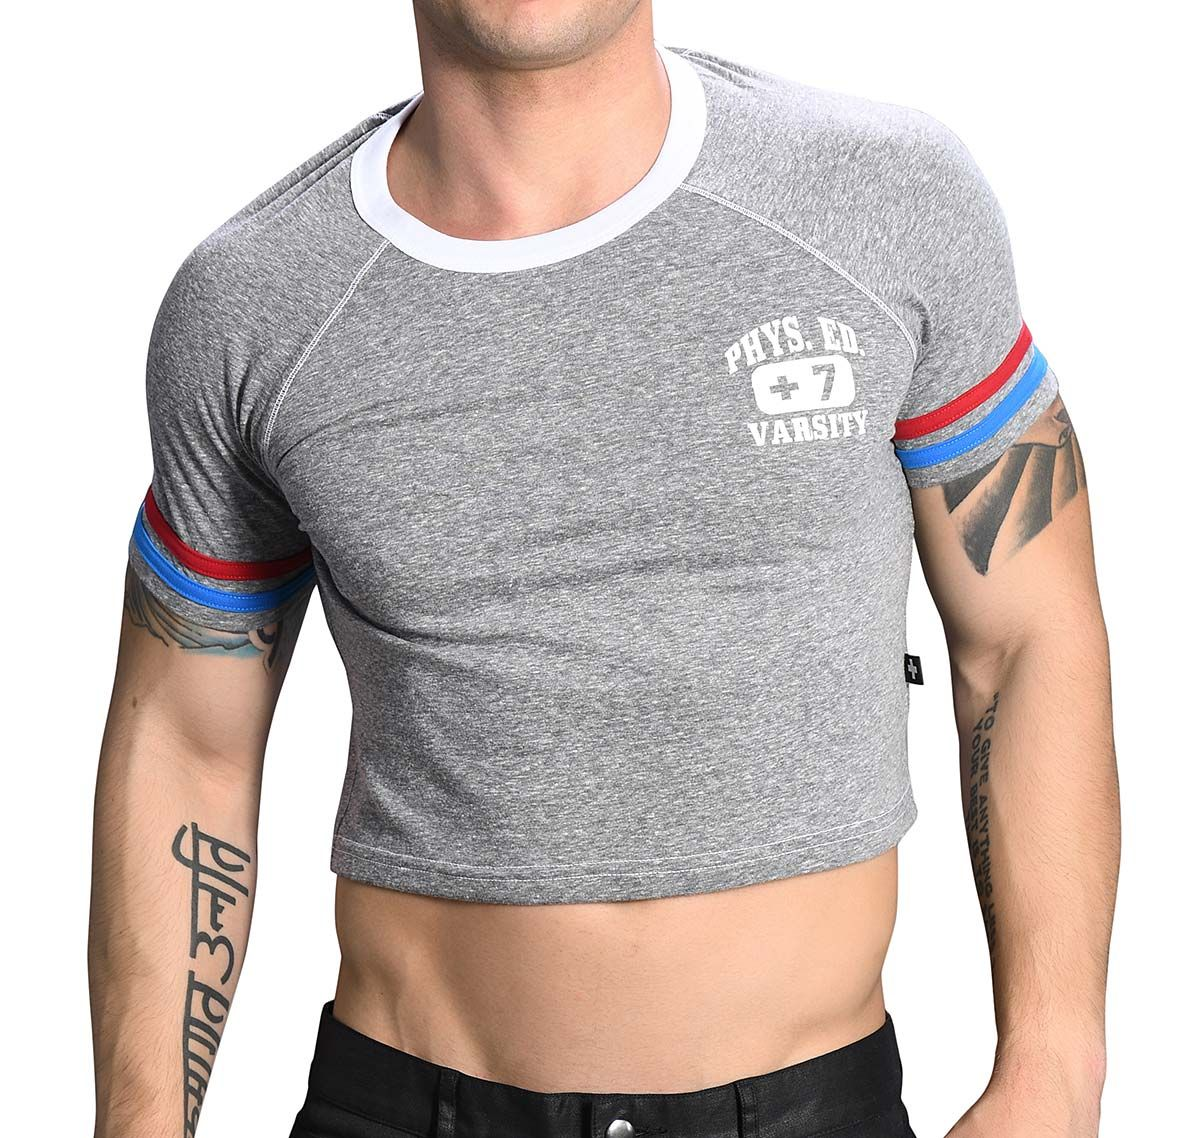 Andrew Christian T-shirt PHYS. ED. CROPPED TEE 10267, grey